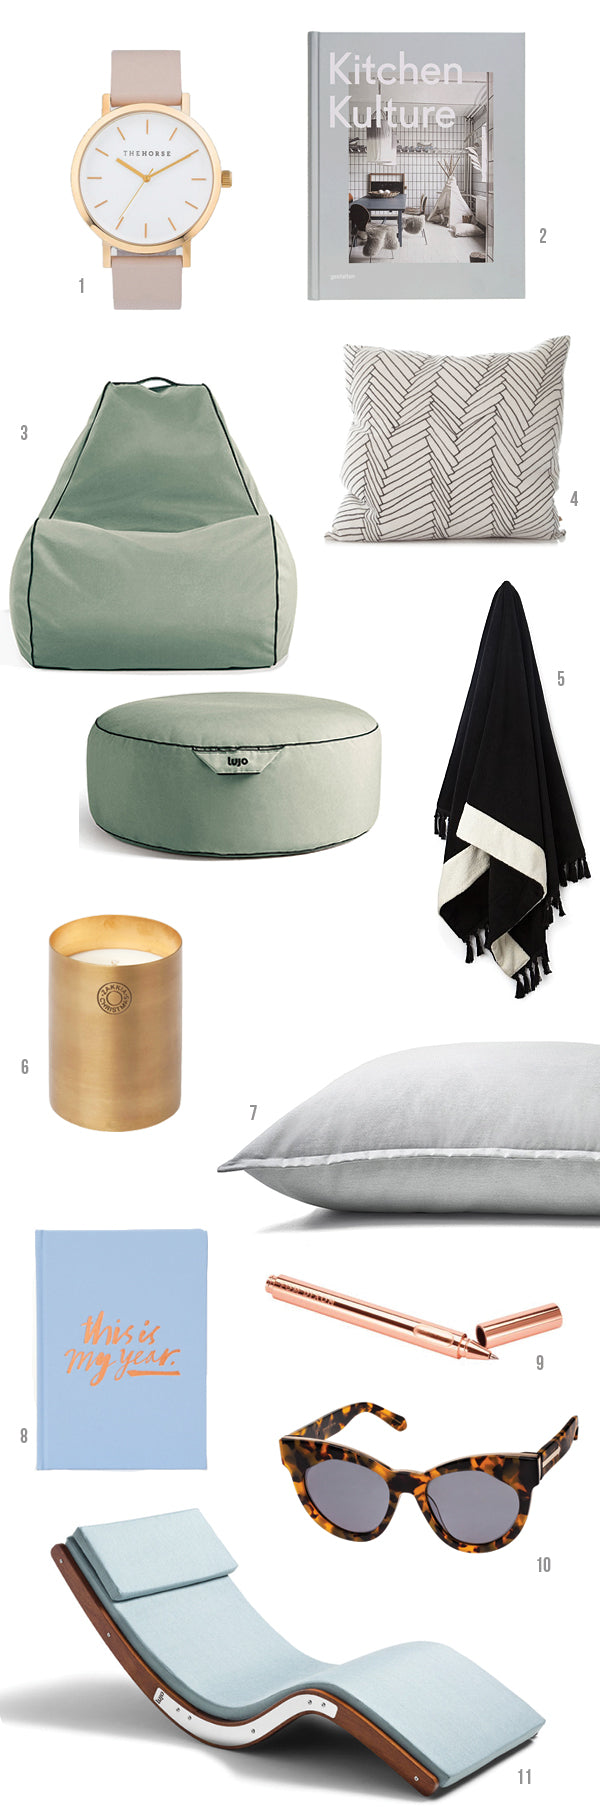 outdoor-beanbag-sun-loungers-and-gifts.jpg